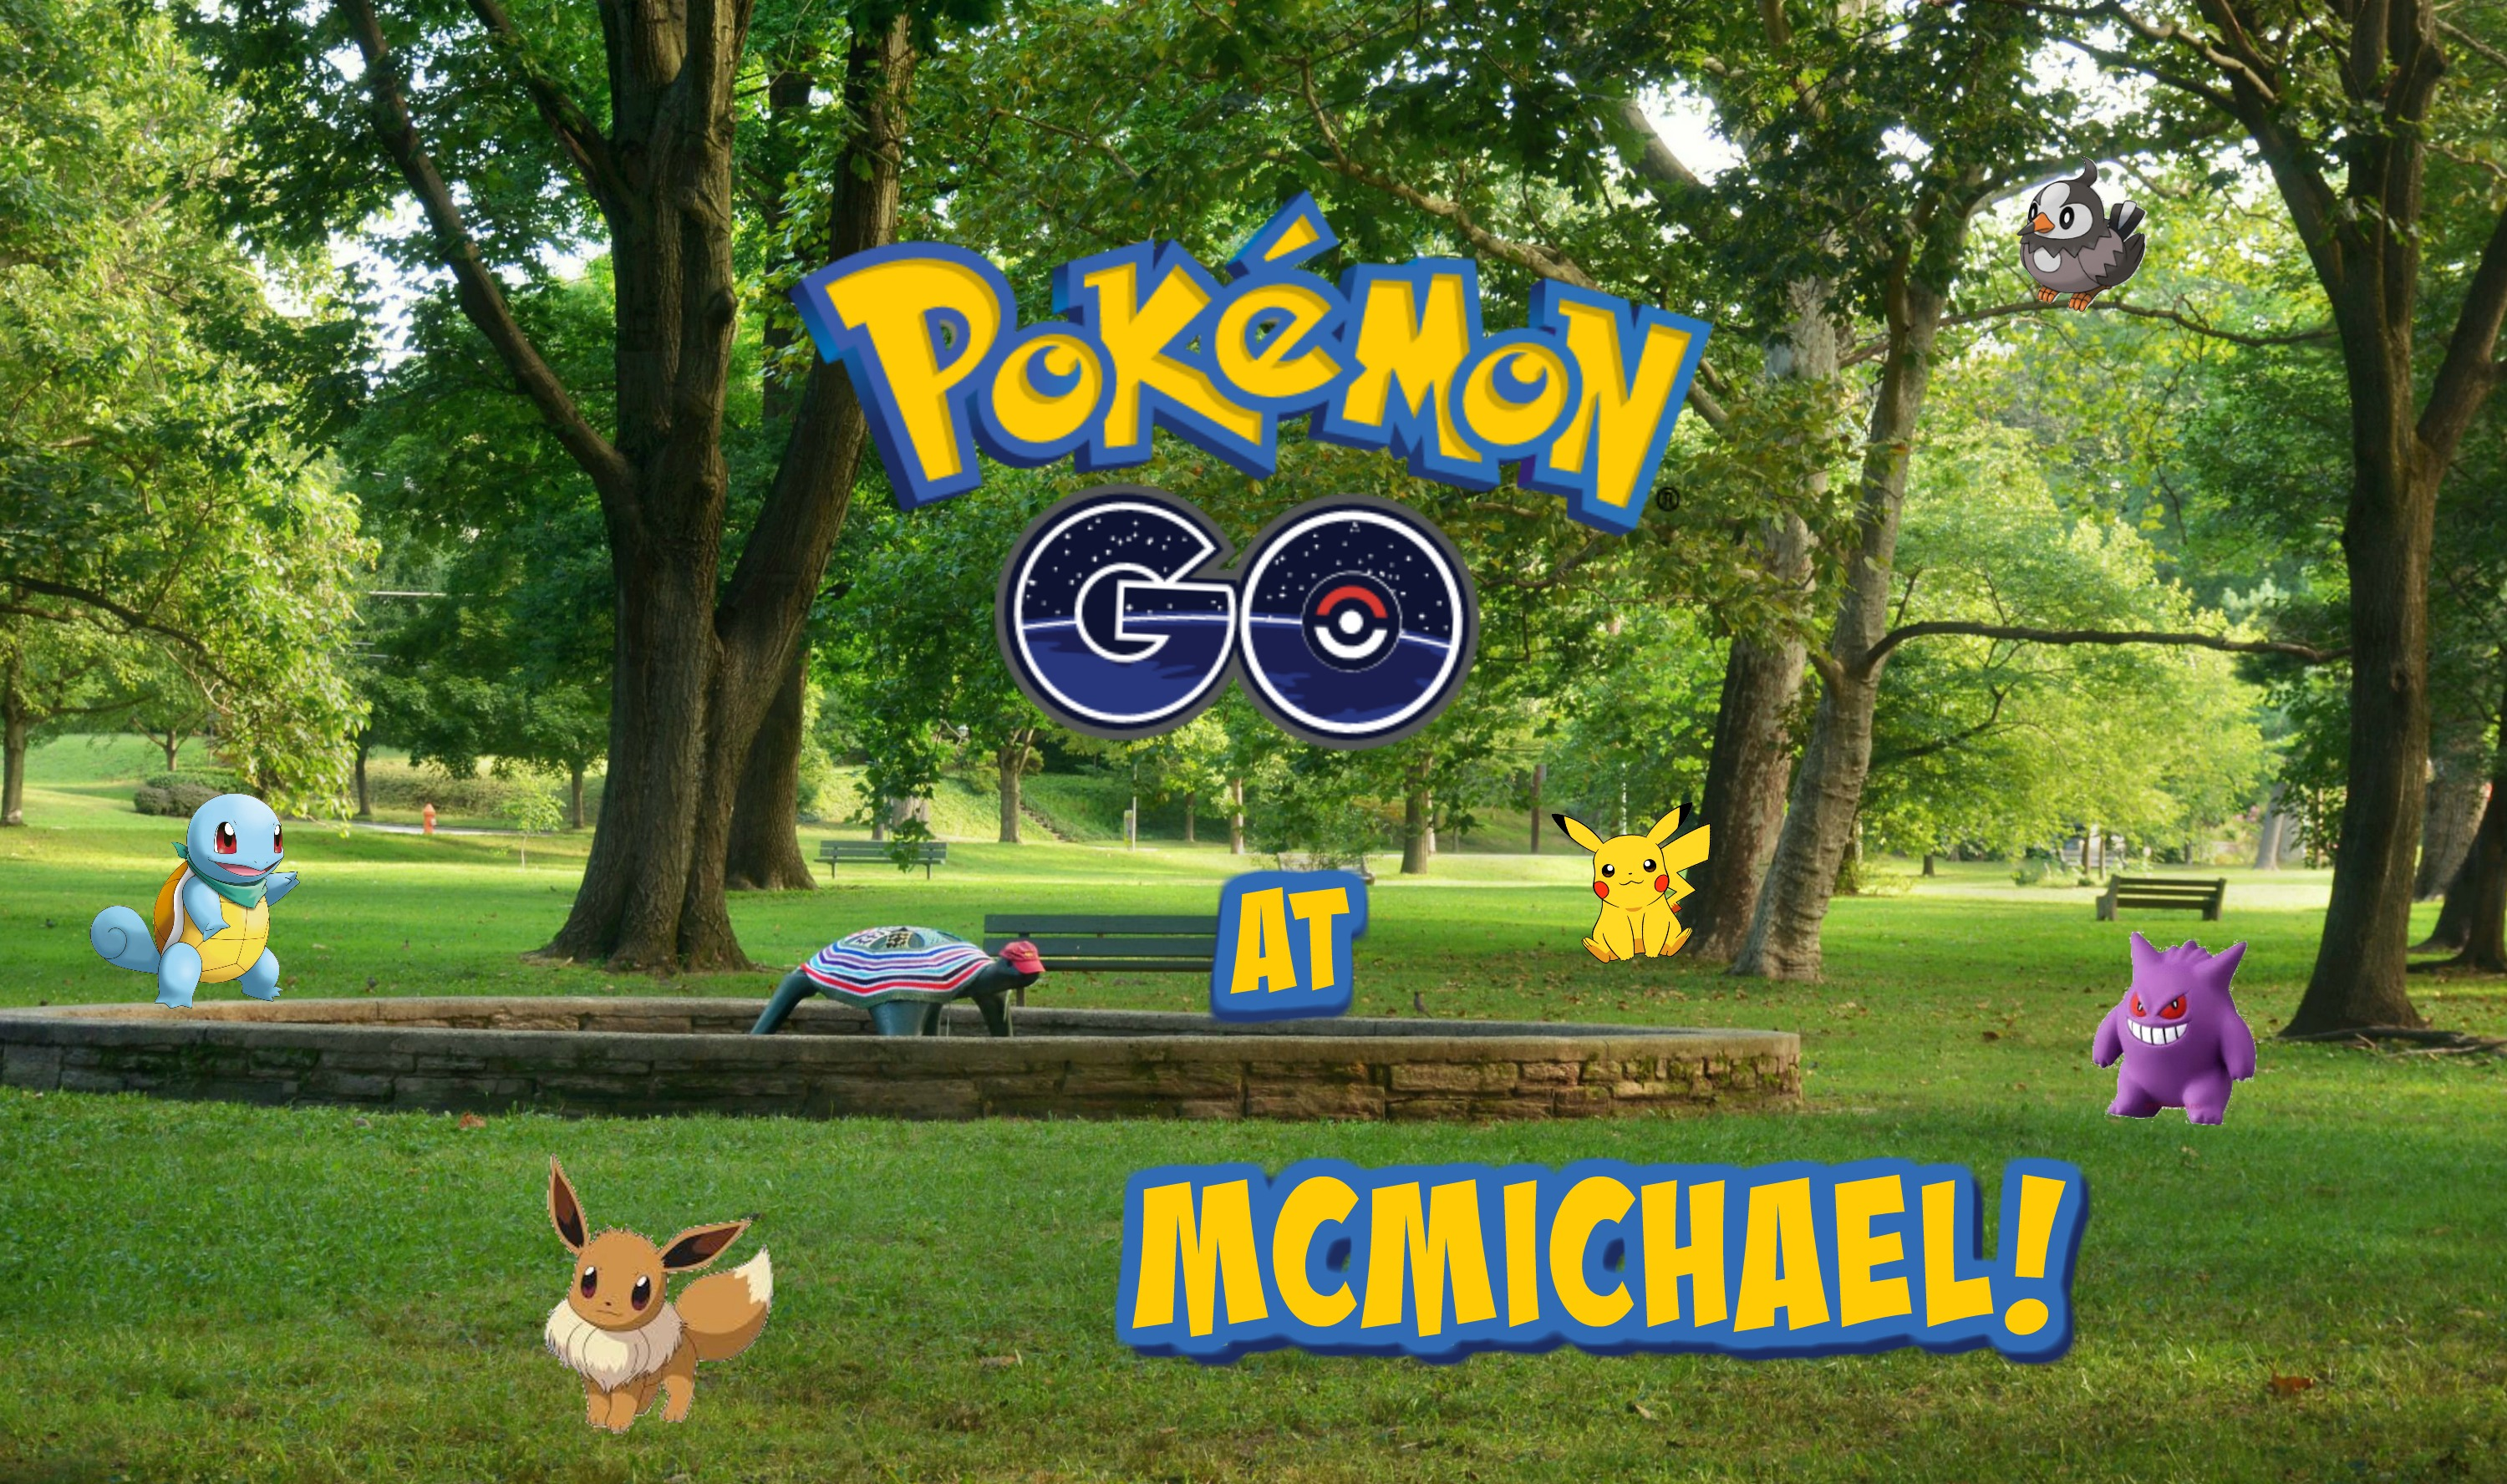 EastFallsLocal pokemon go at mcmichael 2